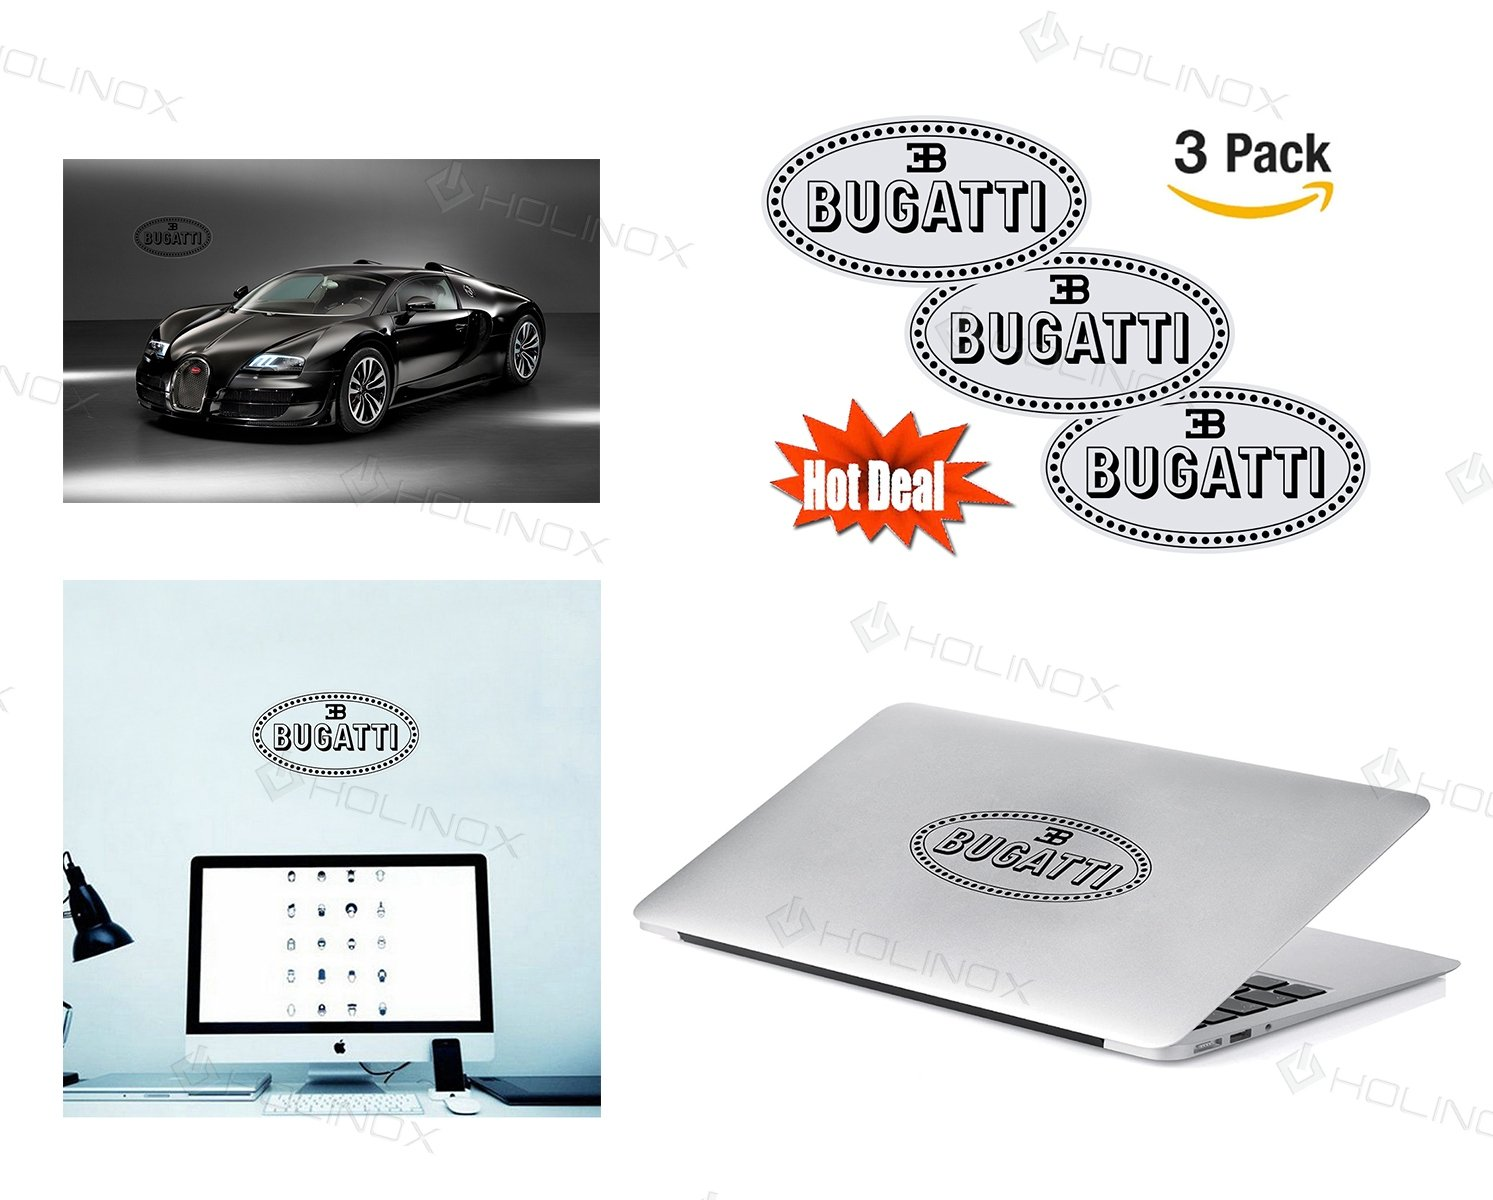 Amazon bugatti logo stickers decal set of 3 decals high amazon bugatti logo stickers decal set of 3 decals high resolution superior finish and transparent background ideal for car motorcycle laptop voltagebd Image collections